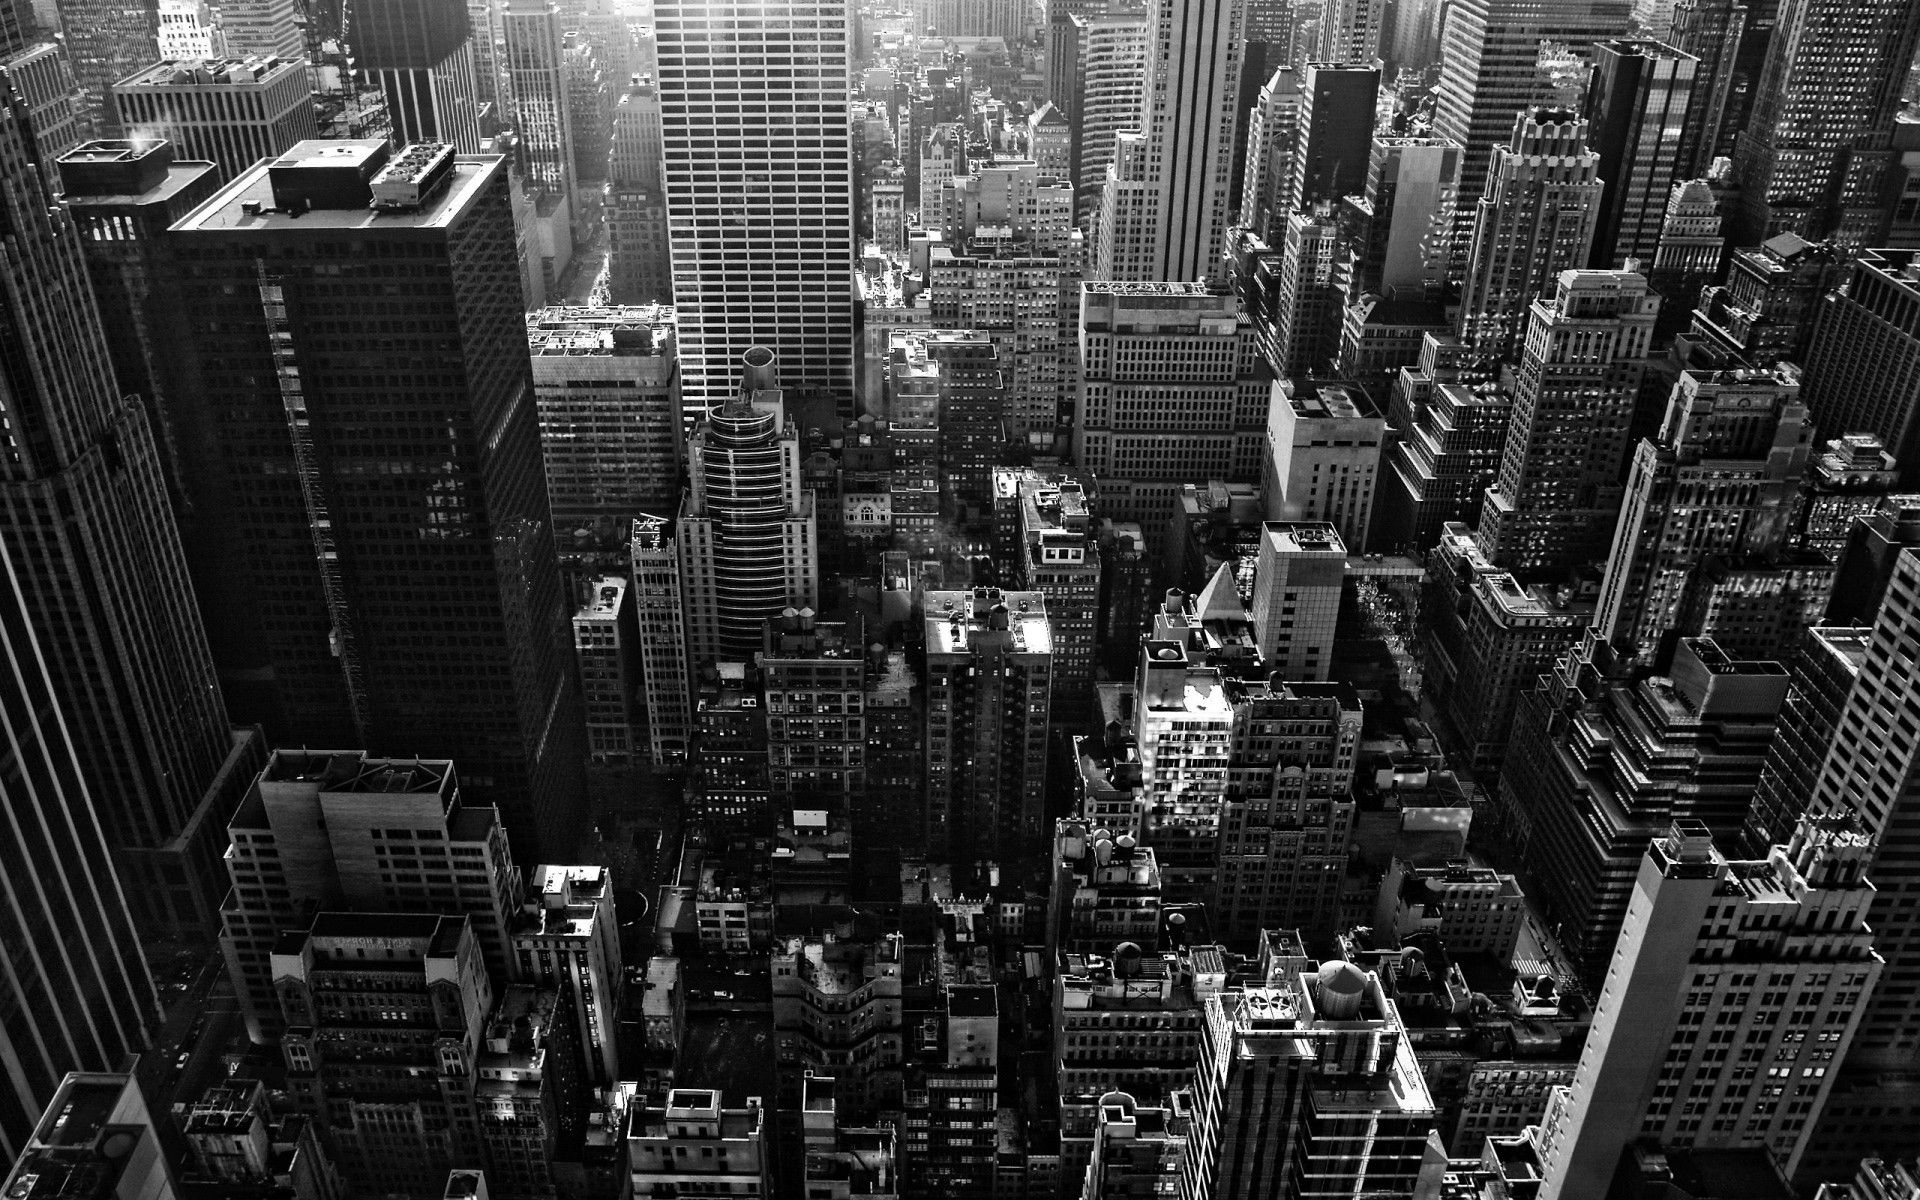 chicago black and white wallpaper desktop for desktop wallpaper 1920 x 1200 px kb color widescreen bulls iphone at night black and white skyline